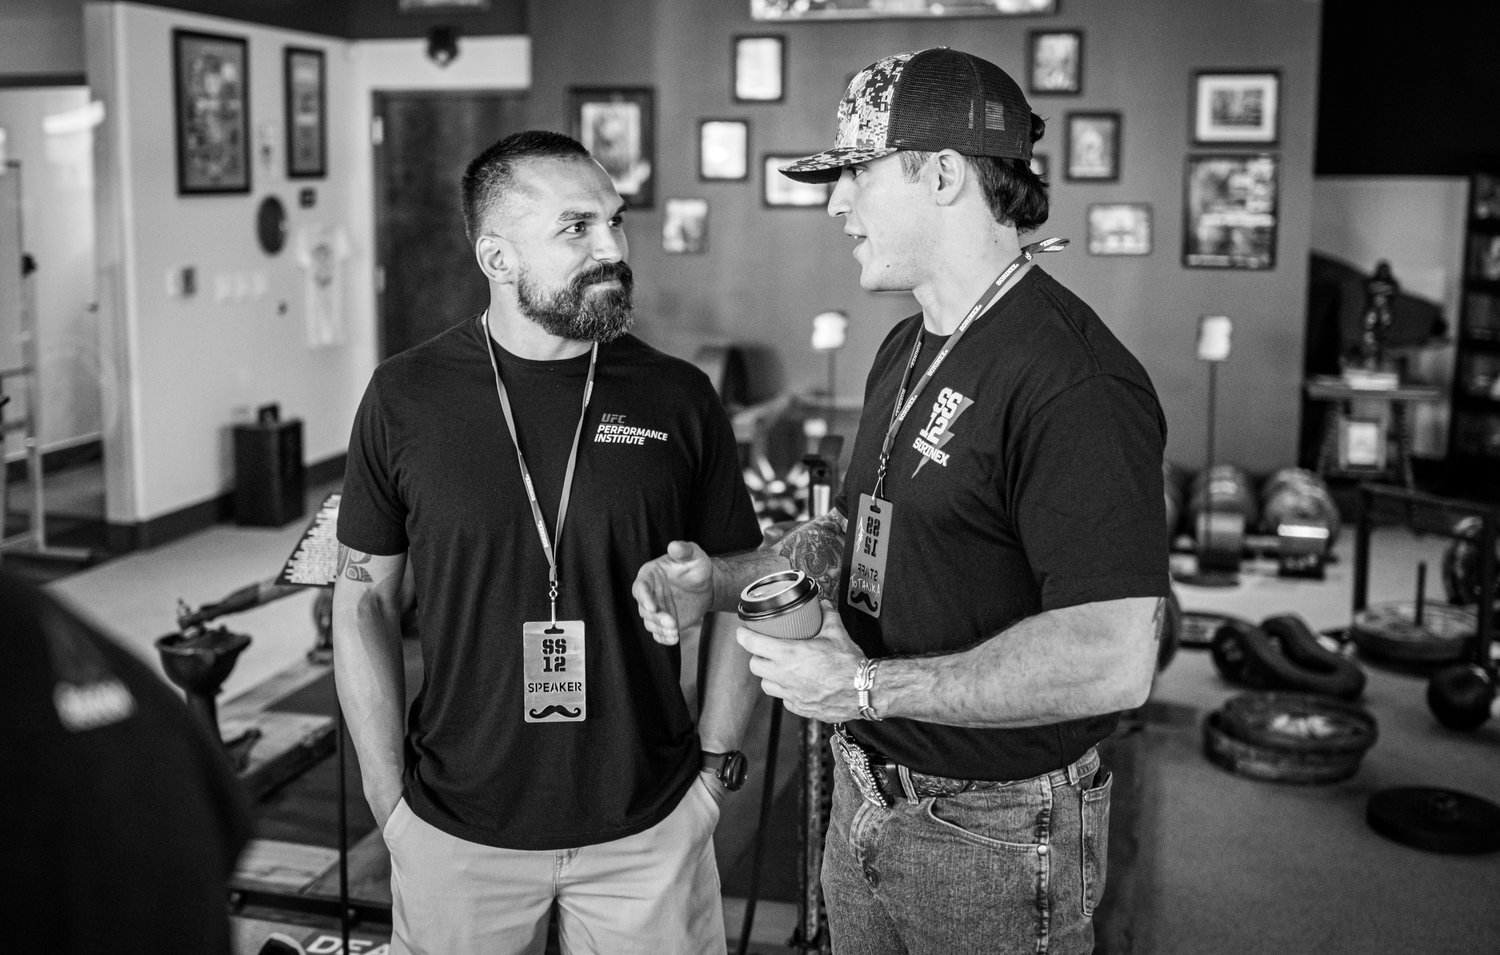 Brady speaks with Bo Sandoval, a Summer Strong 12 Guest Speaker and Director of Strength and Conditioning at the UFC Performance Institute.